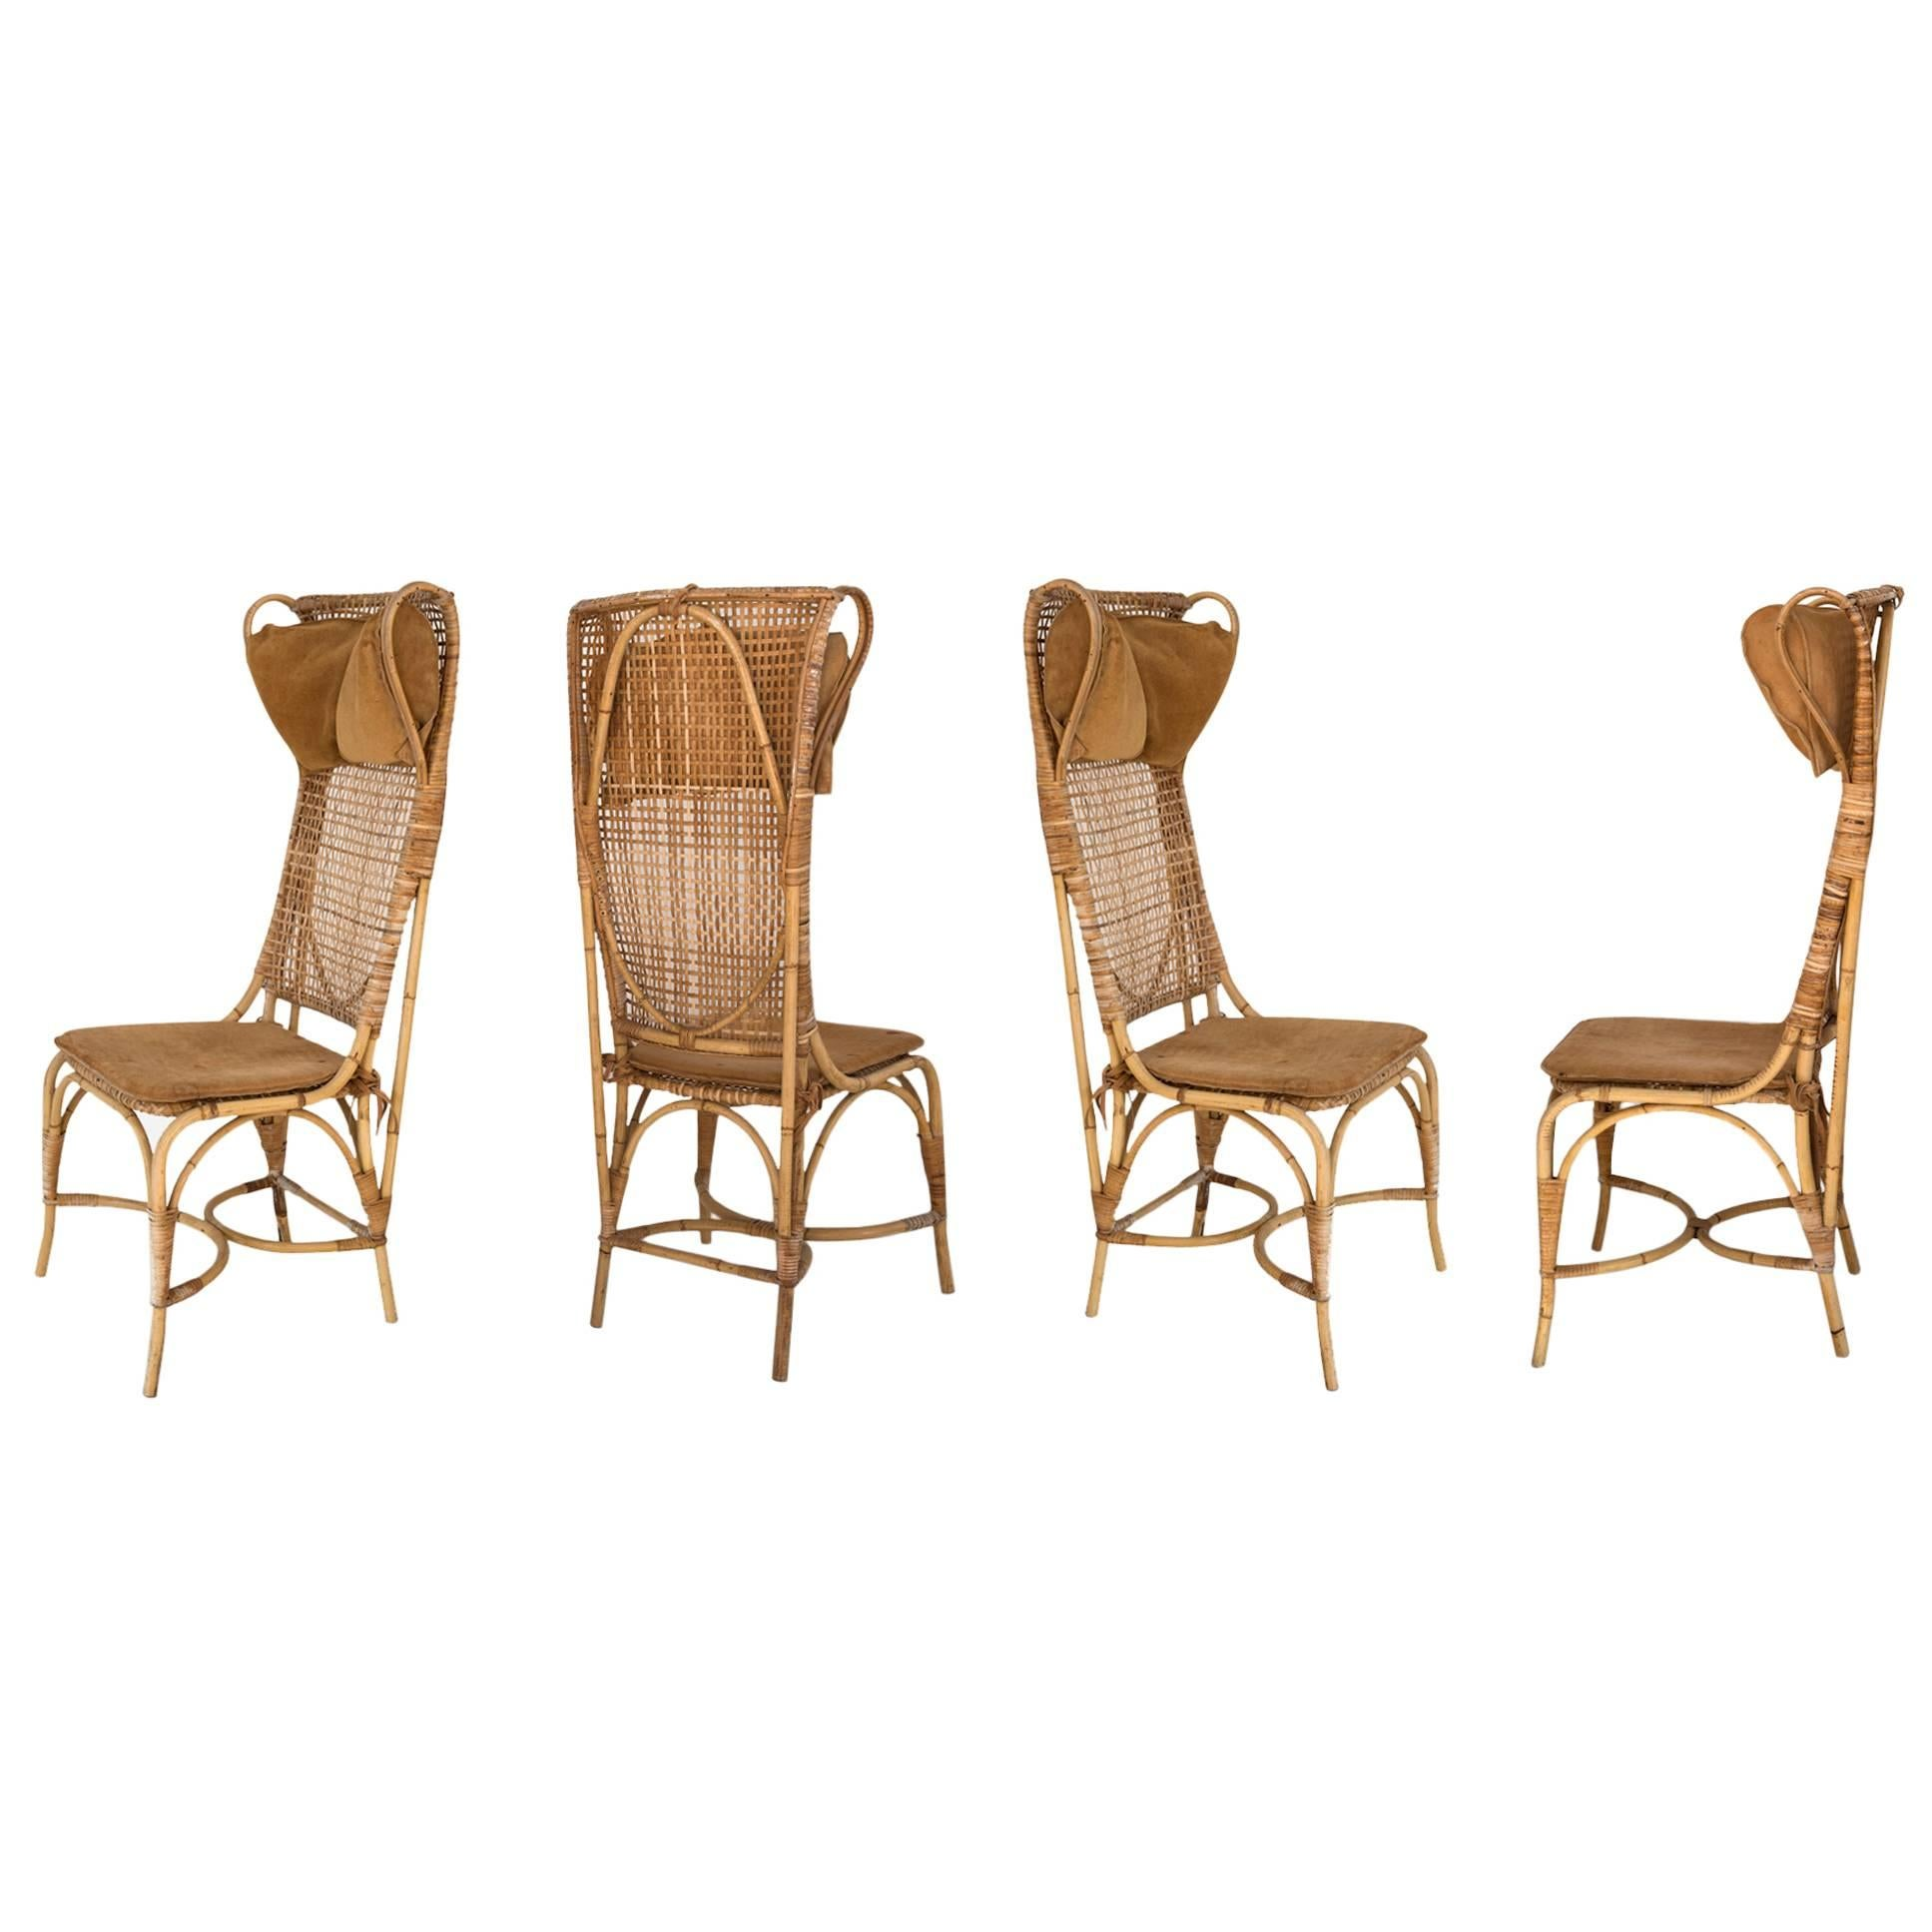 Rattan Chairs Josef Frank Set Of Four Rattan Chairs Manufactured Svenskt Tenn Sweden 1940s